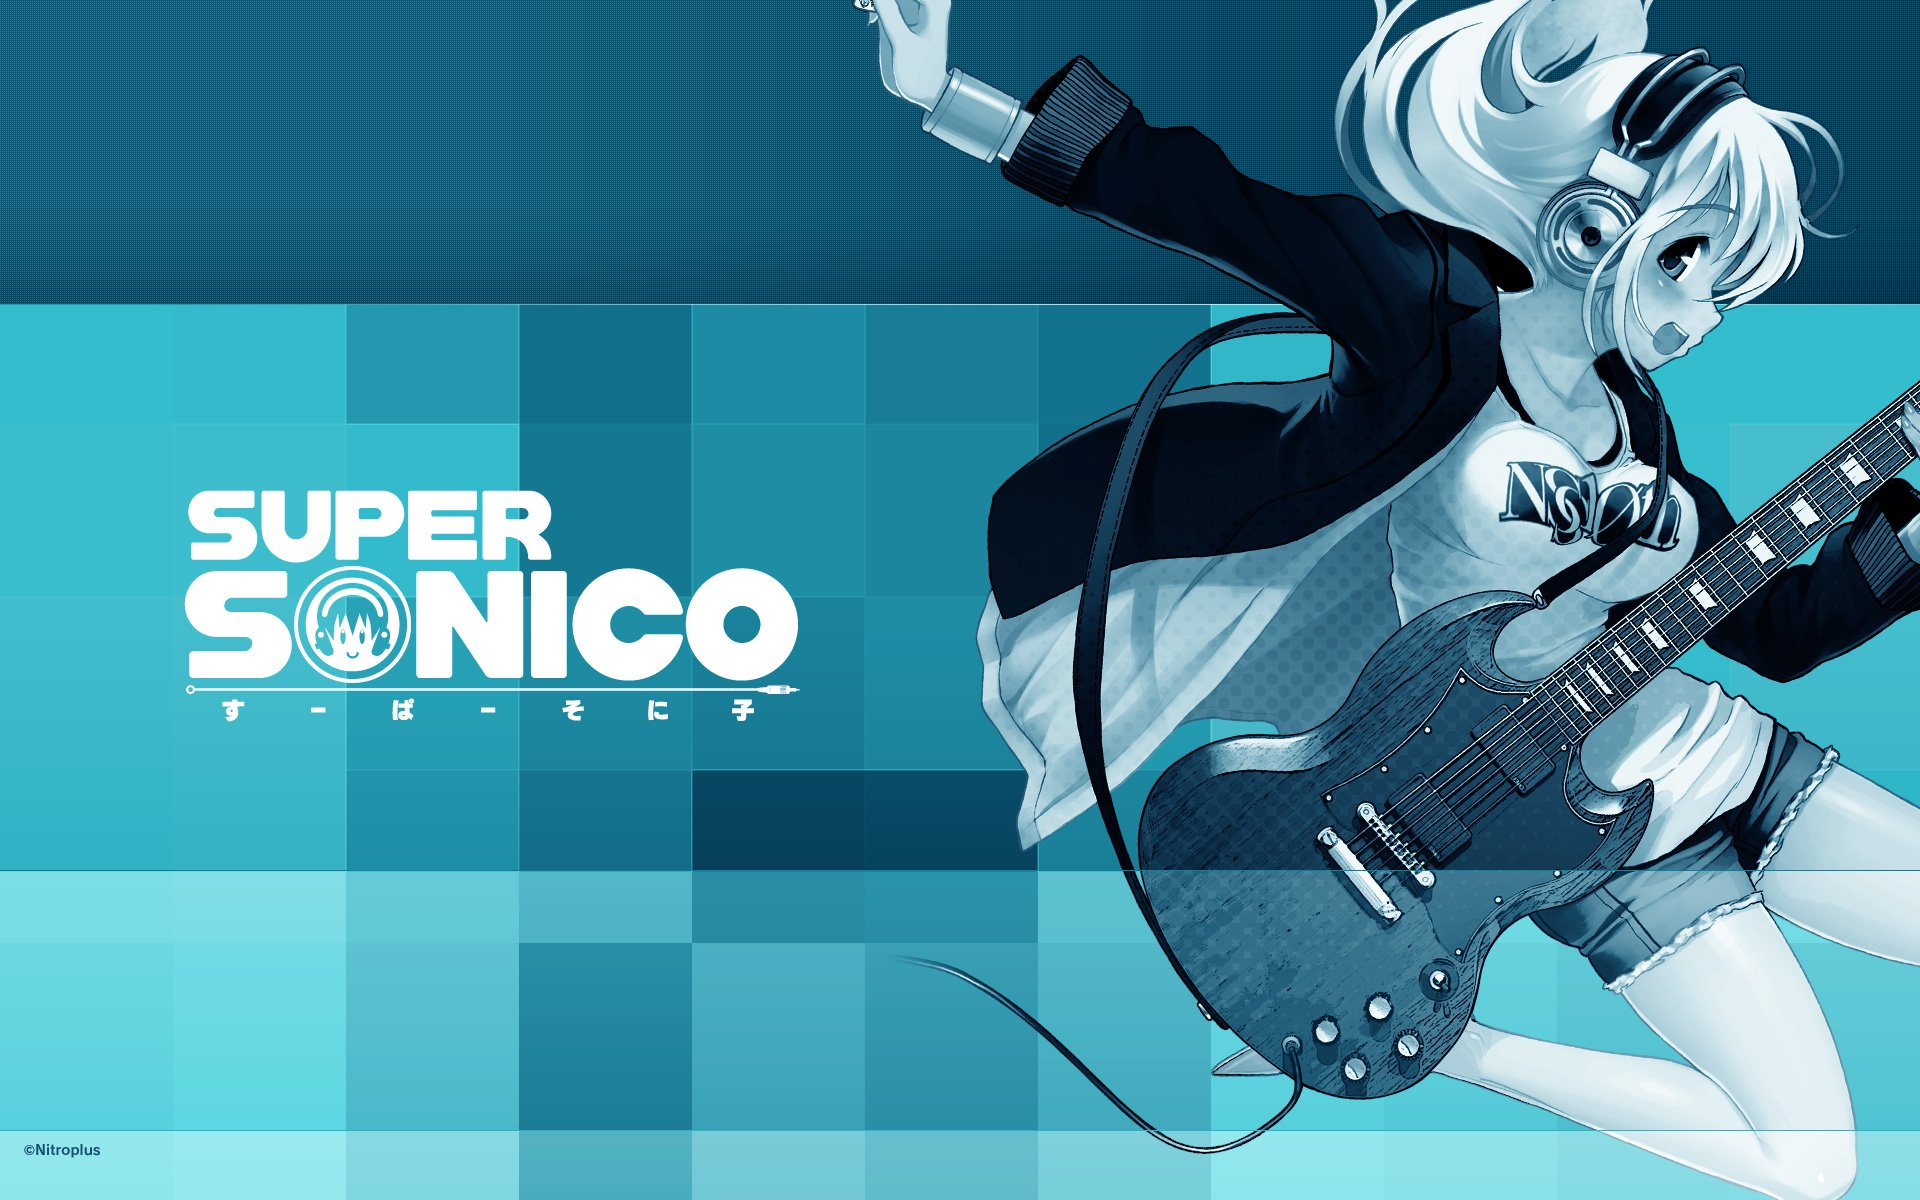 Anime - Super Sonico  Headphones Music Wallpaper